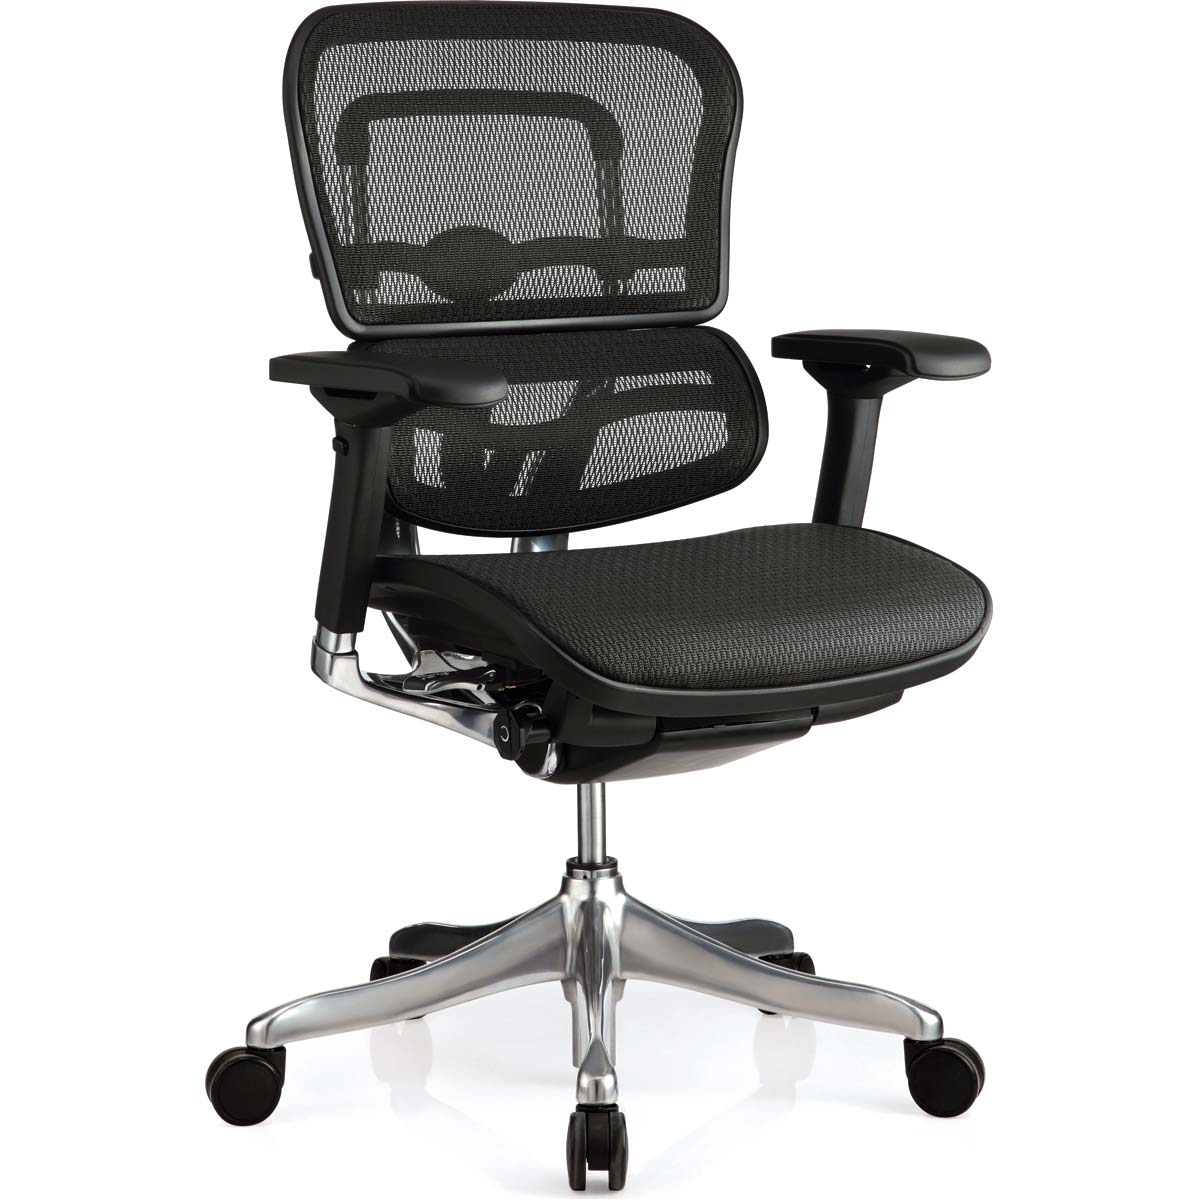 Raynor Ergo Elite Chair ME5ERGLTLOW  Shop Raynor